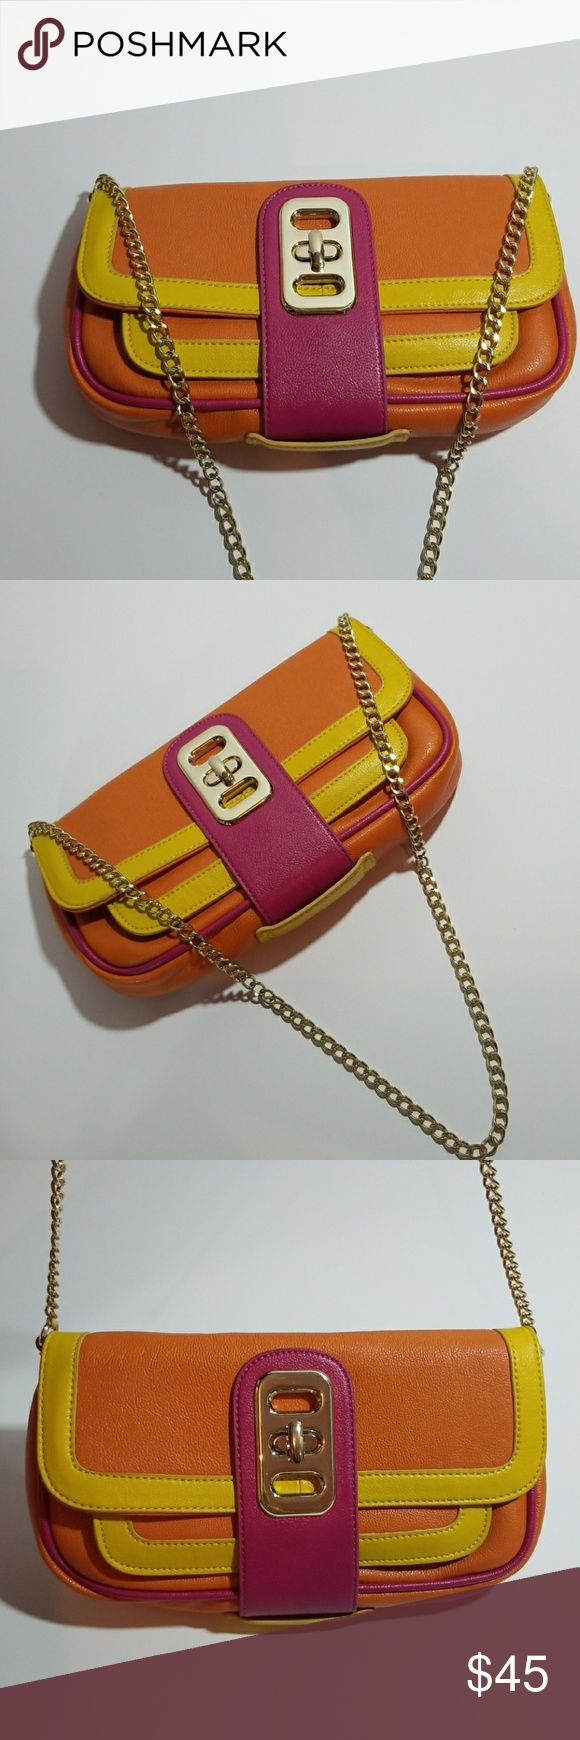 🎈SALE💰 ⬇ALDO Multi-Colored Shoulder Bag-Like New This ALDO Multi-Colored Shoulder Bag (Like New) is yellow, pink, and orange with gold hardware and chain and inscribed ALDO nameplates. Aldo Bags Shoulder Bags